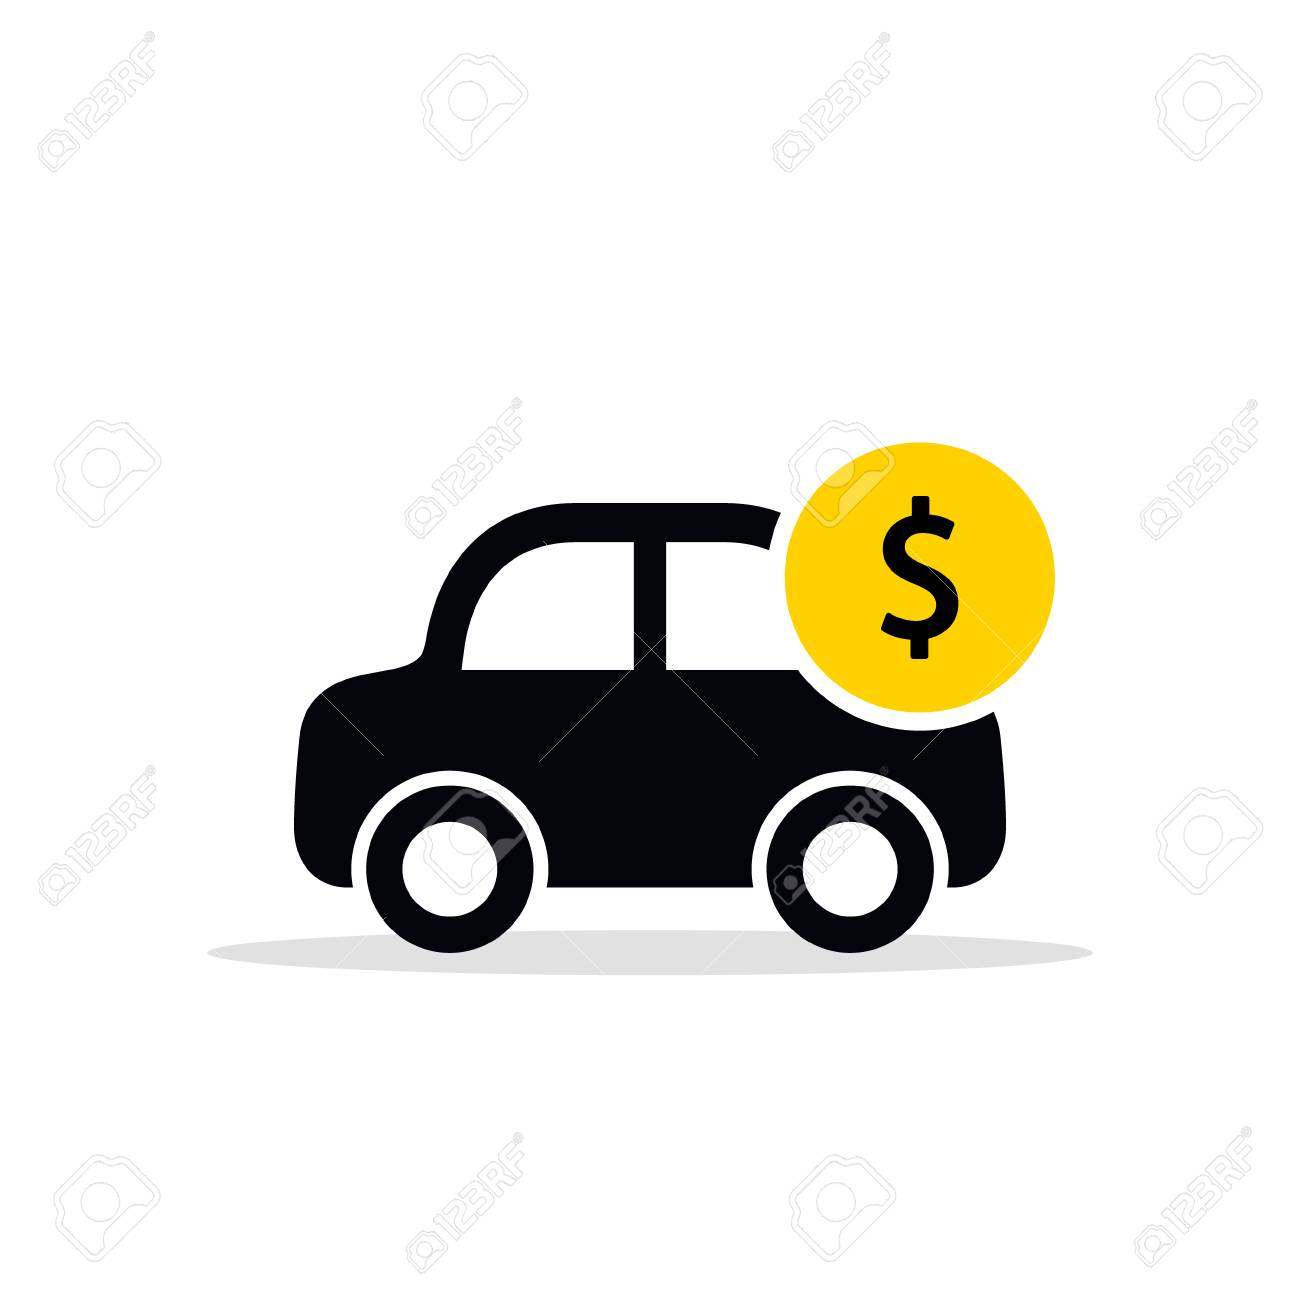 Image result for save money on a car clip art